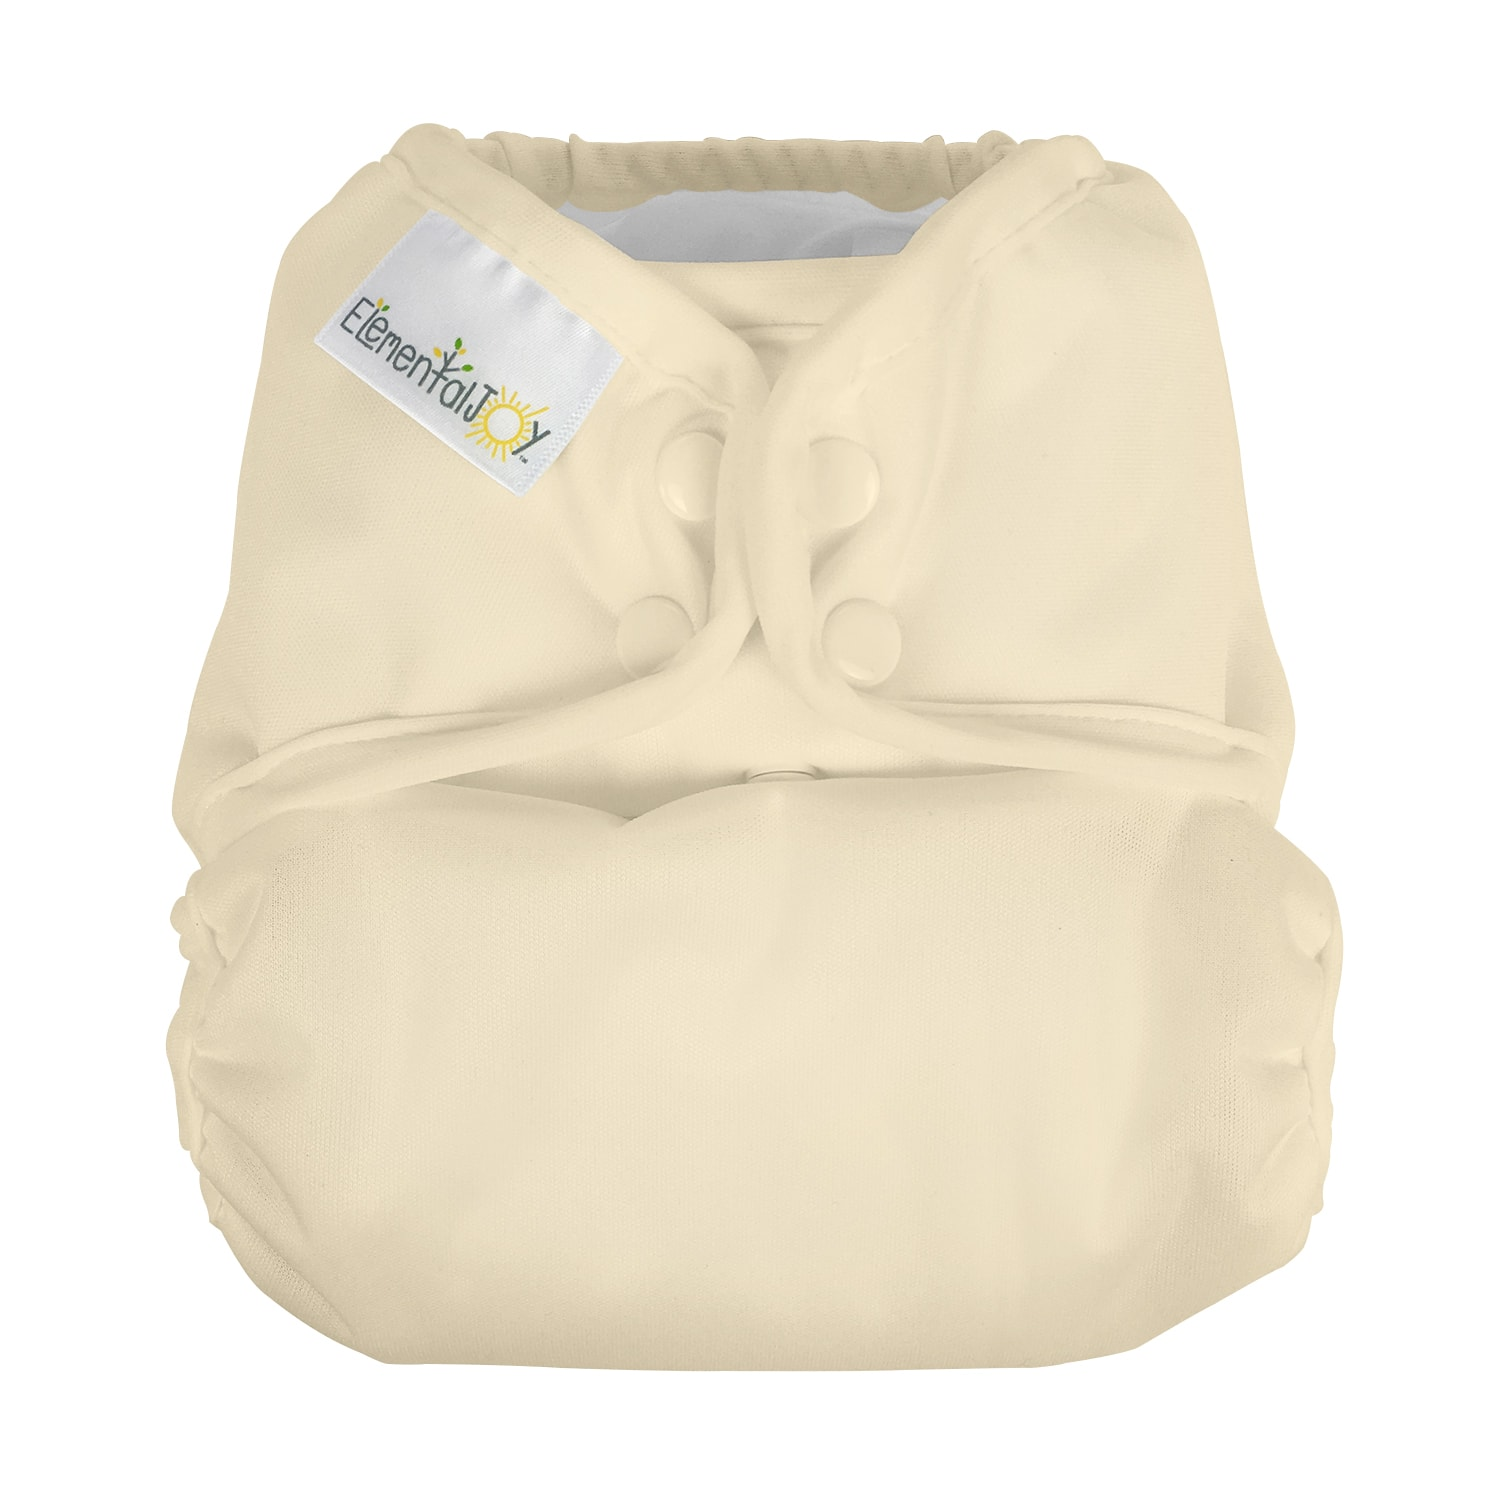 Elemental Joy Pocket Cloth Diaper - Noodle